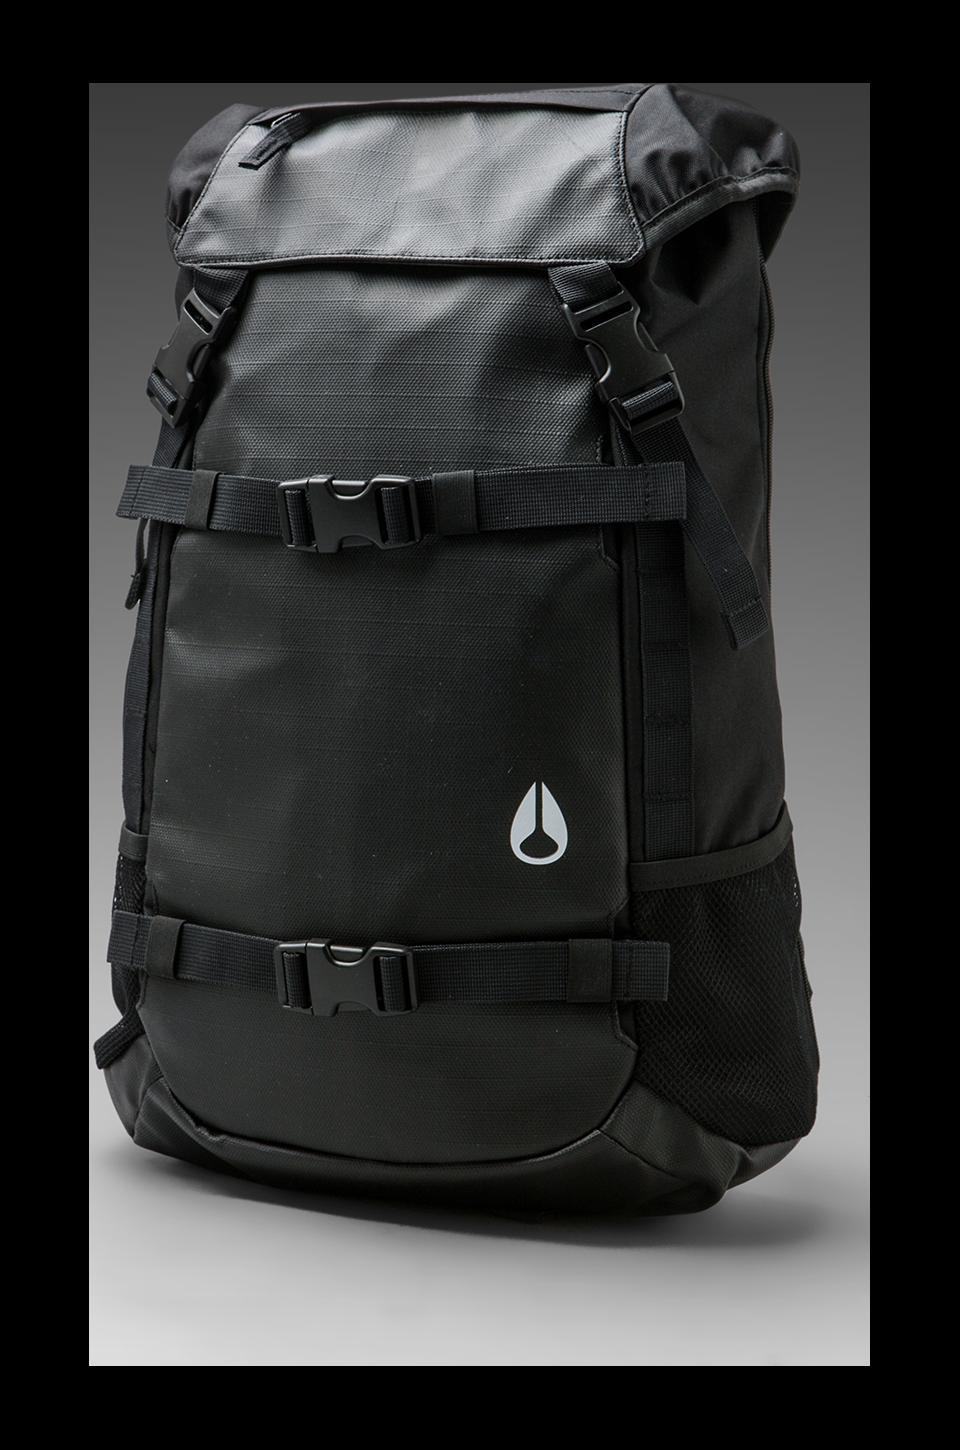 Nixon Landlock Backpack II in Black